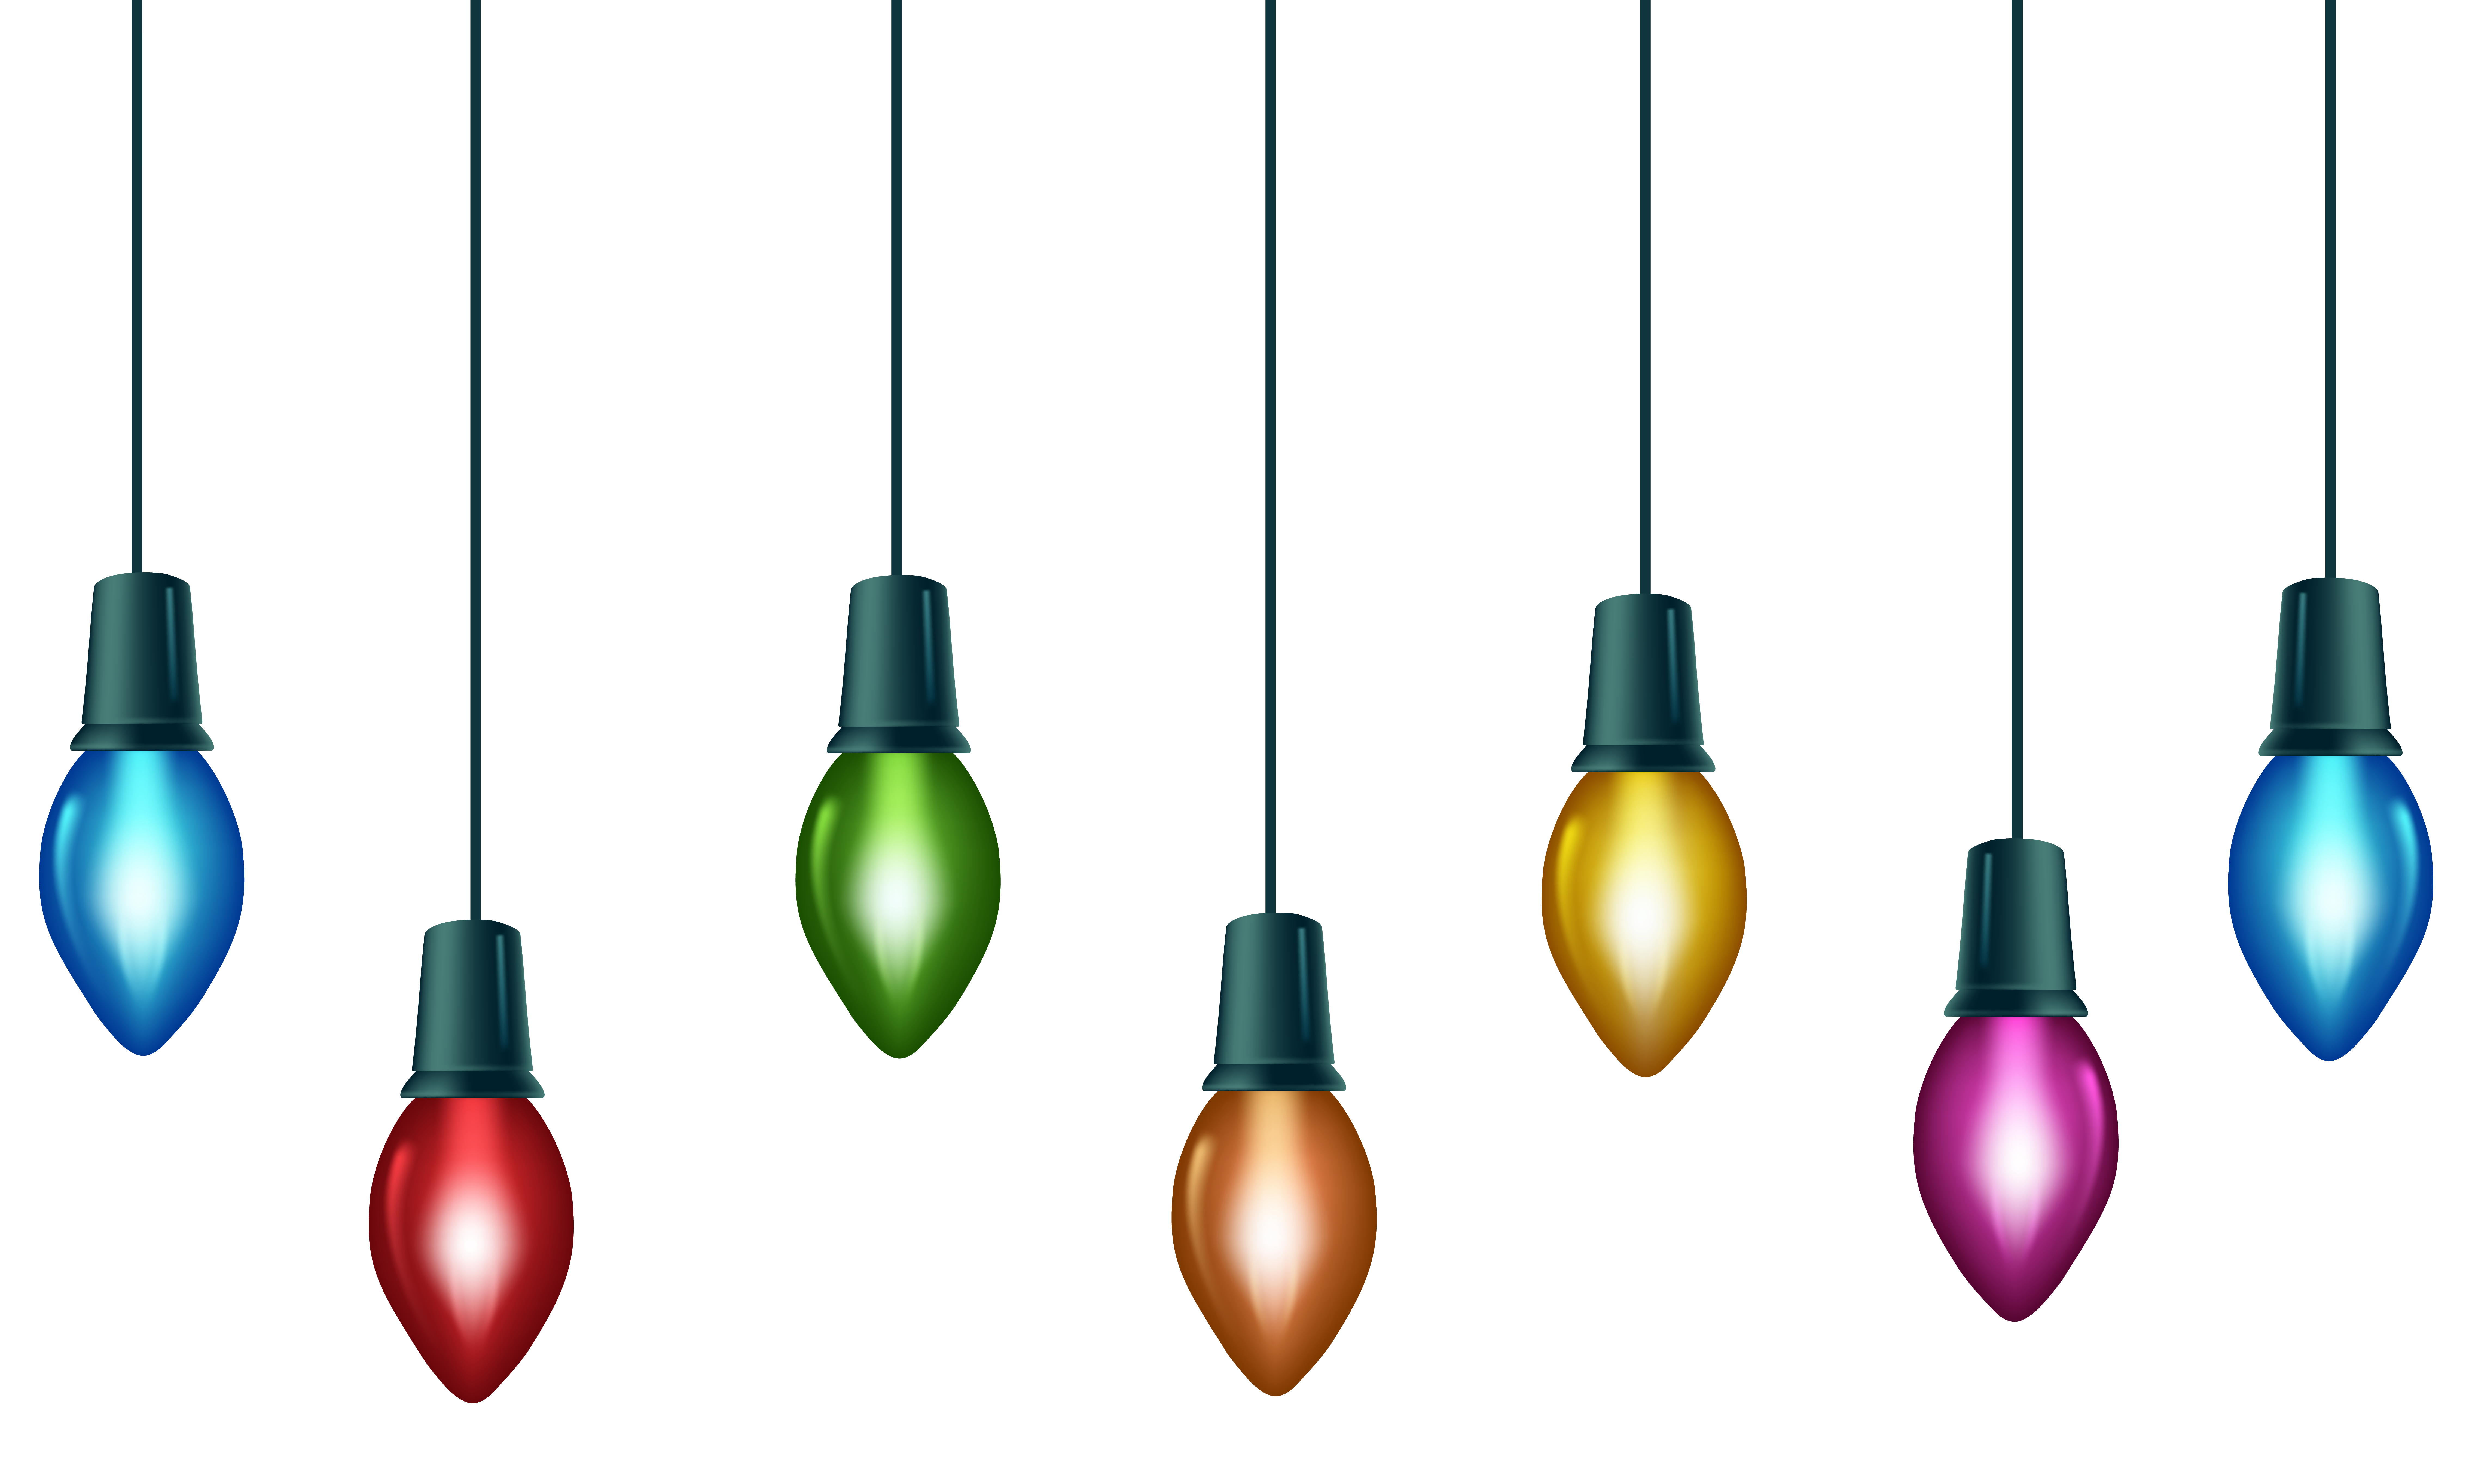 Christmas bulb clipart free image royalty free Christmas Colorful Bulbs PNG Clip Art Image   Gallery Yopriceville ... image royalty free